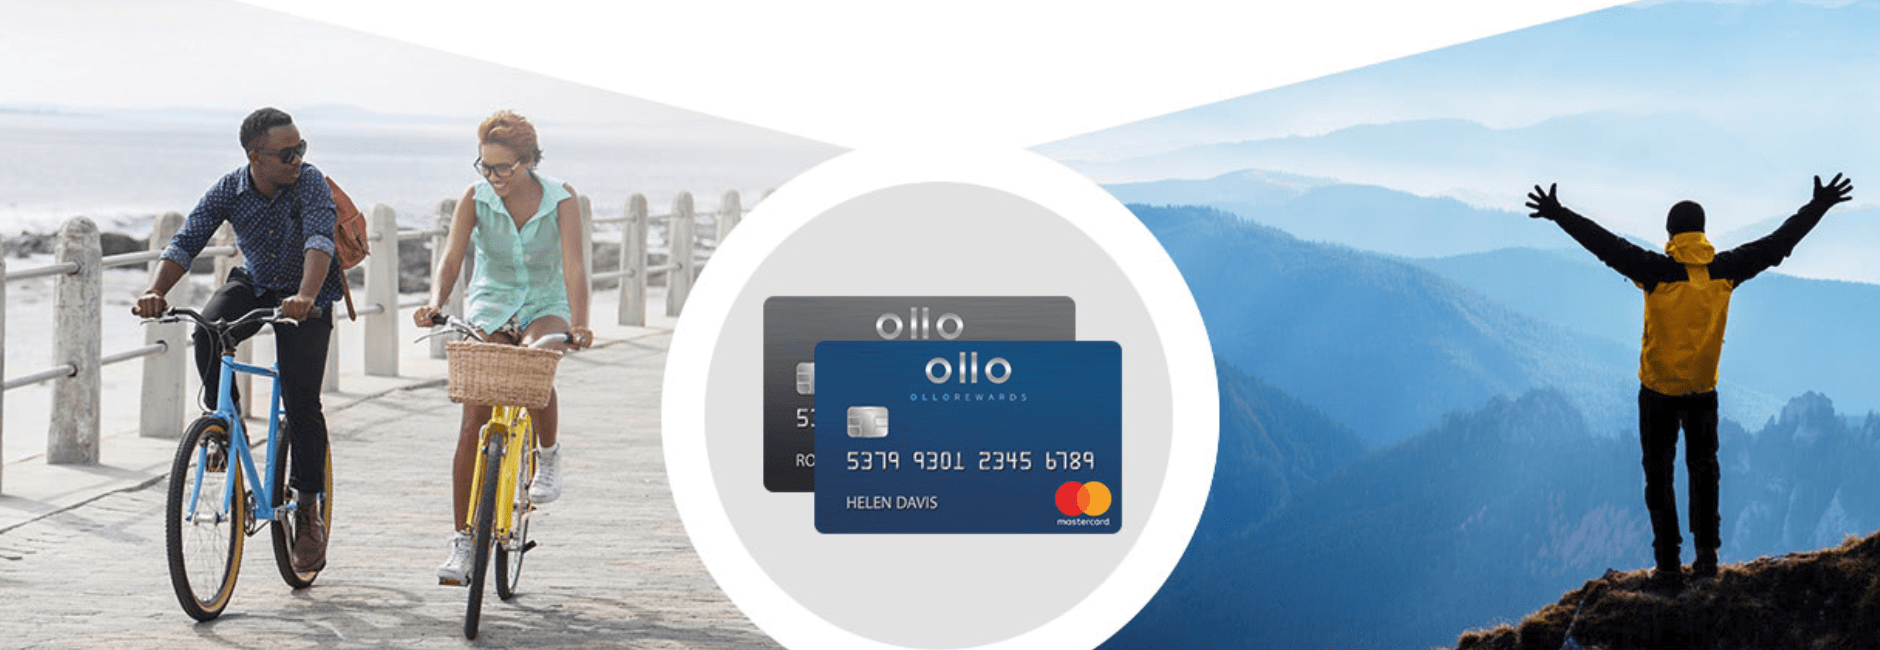 Hello Bank Card MasterCard Evaluation 2020 Login And Approval